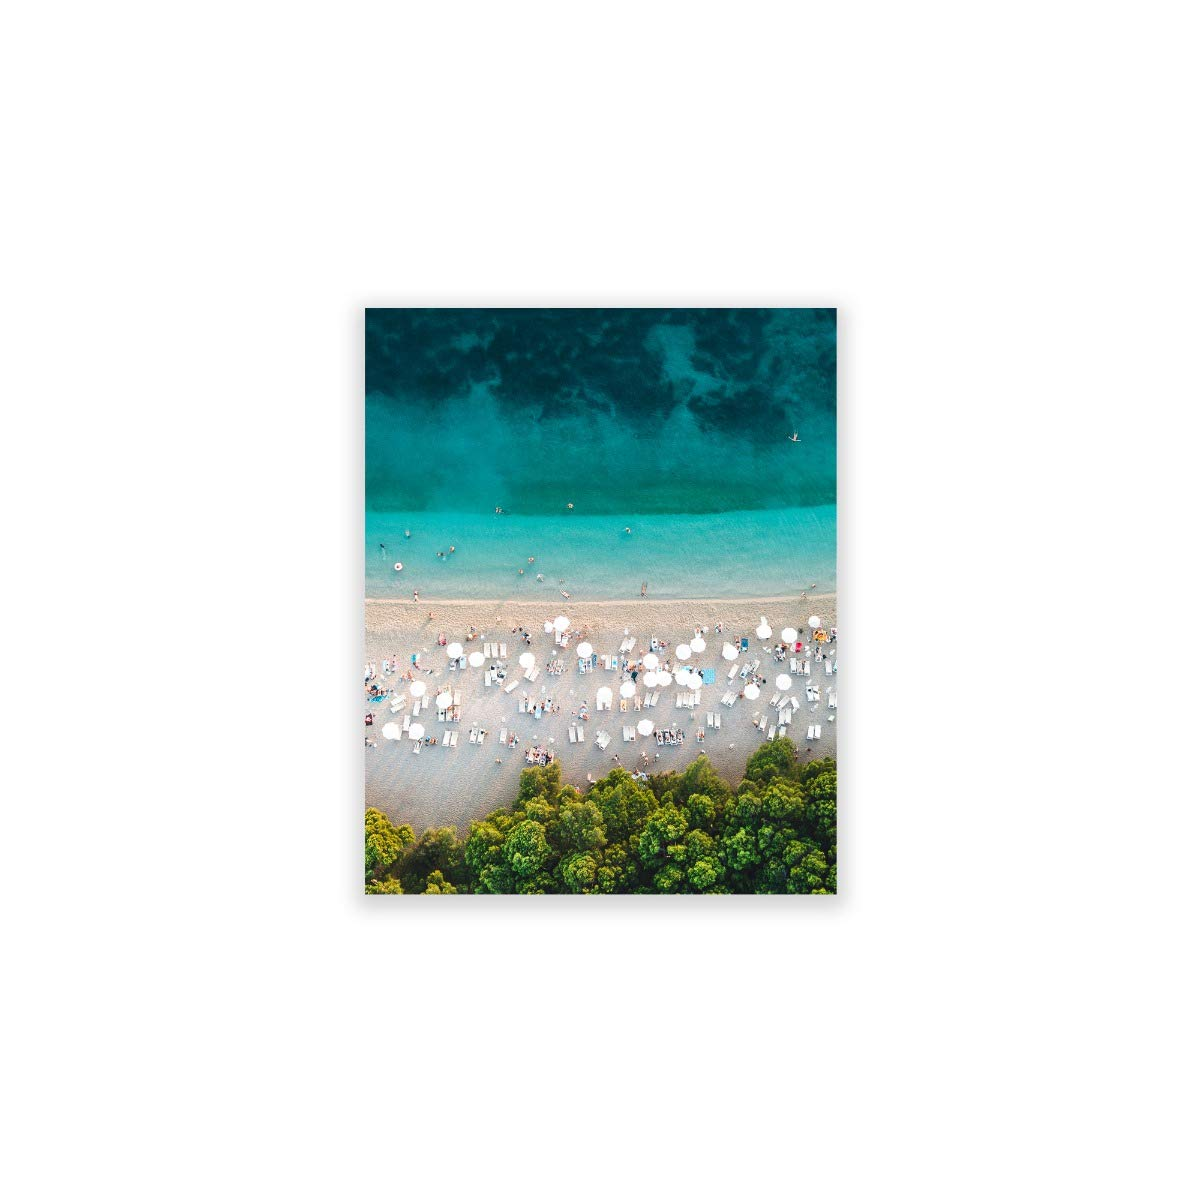 Humble Chic Wall Art Prints - Unframed HD Printed Beach Picture Poster Decorations for Home Decor Living Dining Bedroom Bathroom College Dorm Room - Ombre Beach Aerial Ocean, 8x10 Vertical